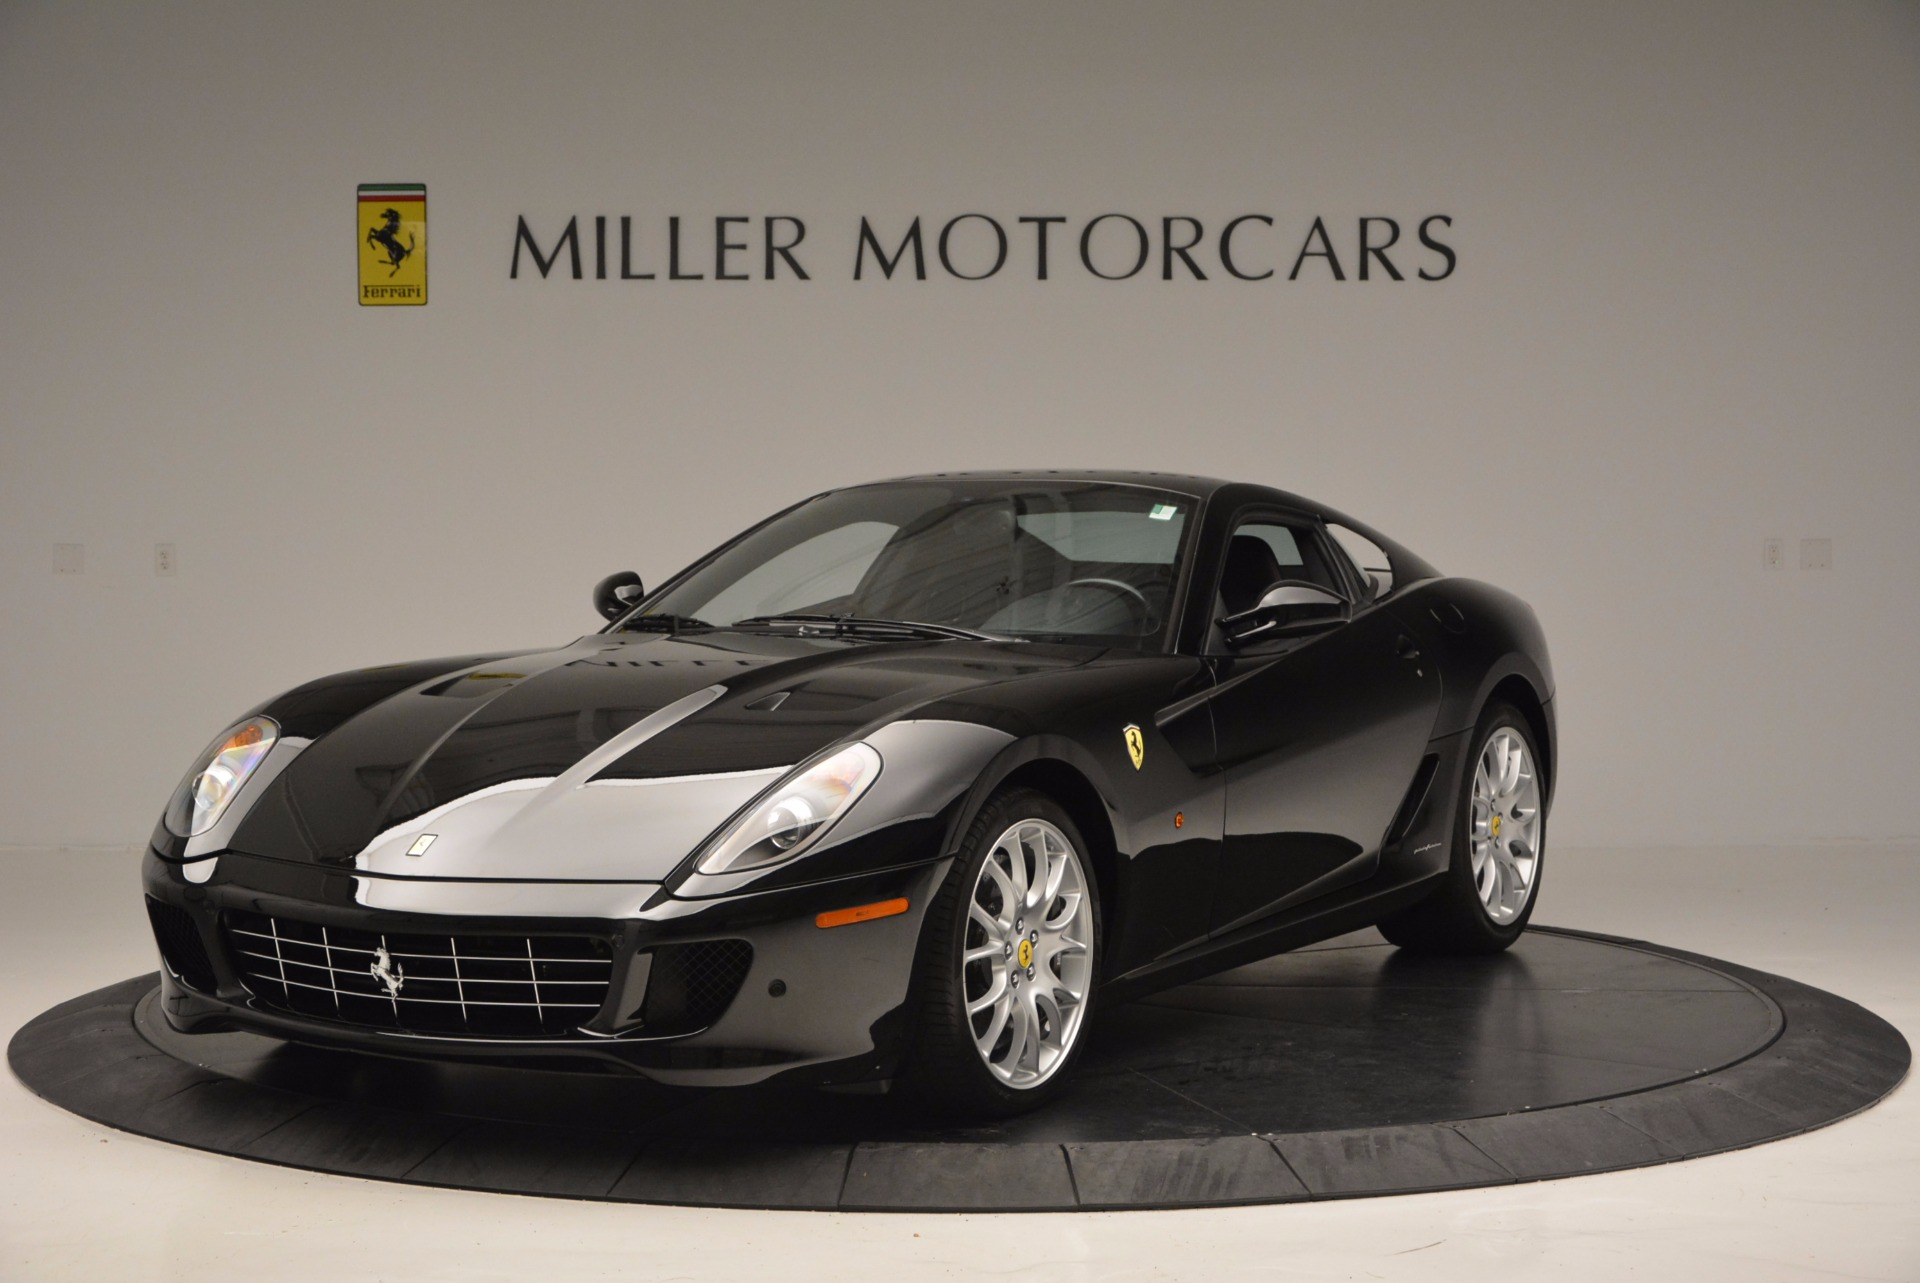 Used 2008 Ferrari 599 GTB Fiorano for sale Sold at Maserati of Westport in Westport CT 06880 1